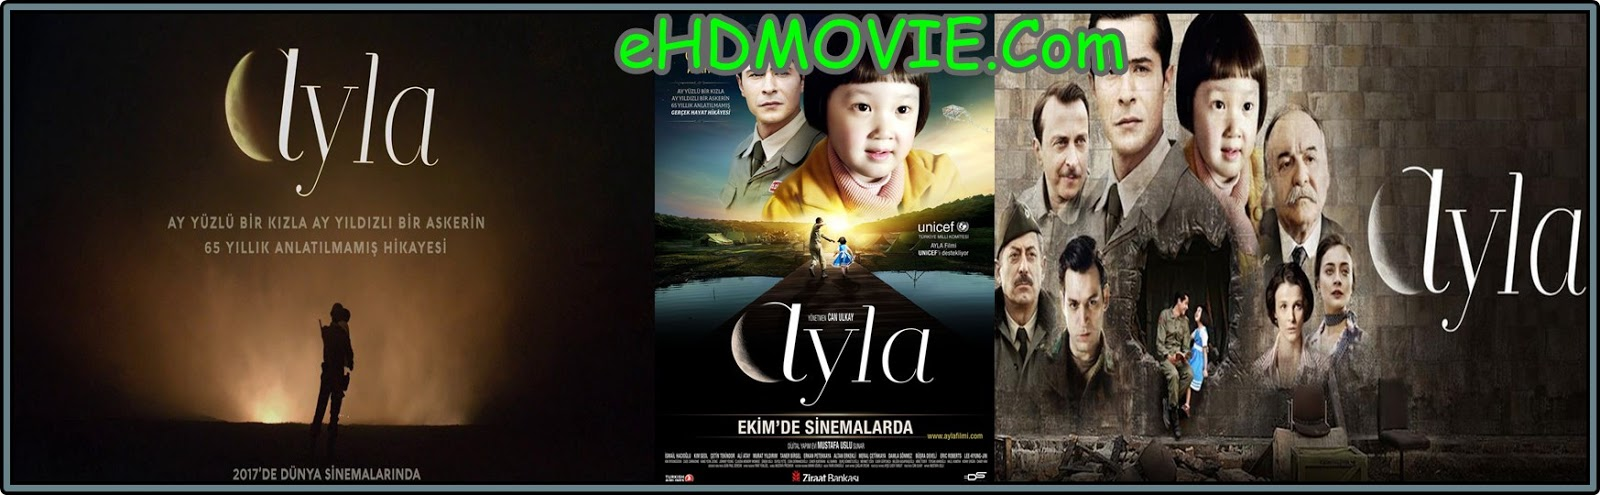 Ayla: The Daughter of War 2017 Full Movie English 720p - 480p ORG BRRip 350MB - 750MB ESubs Free Download